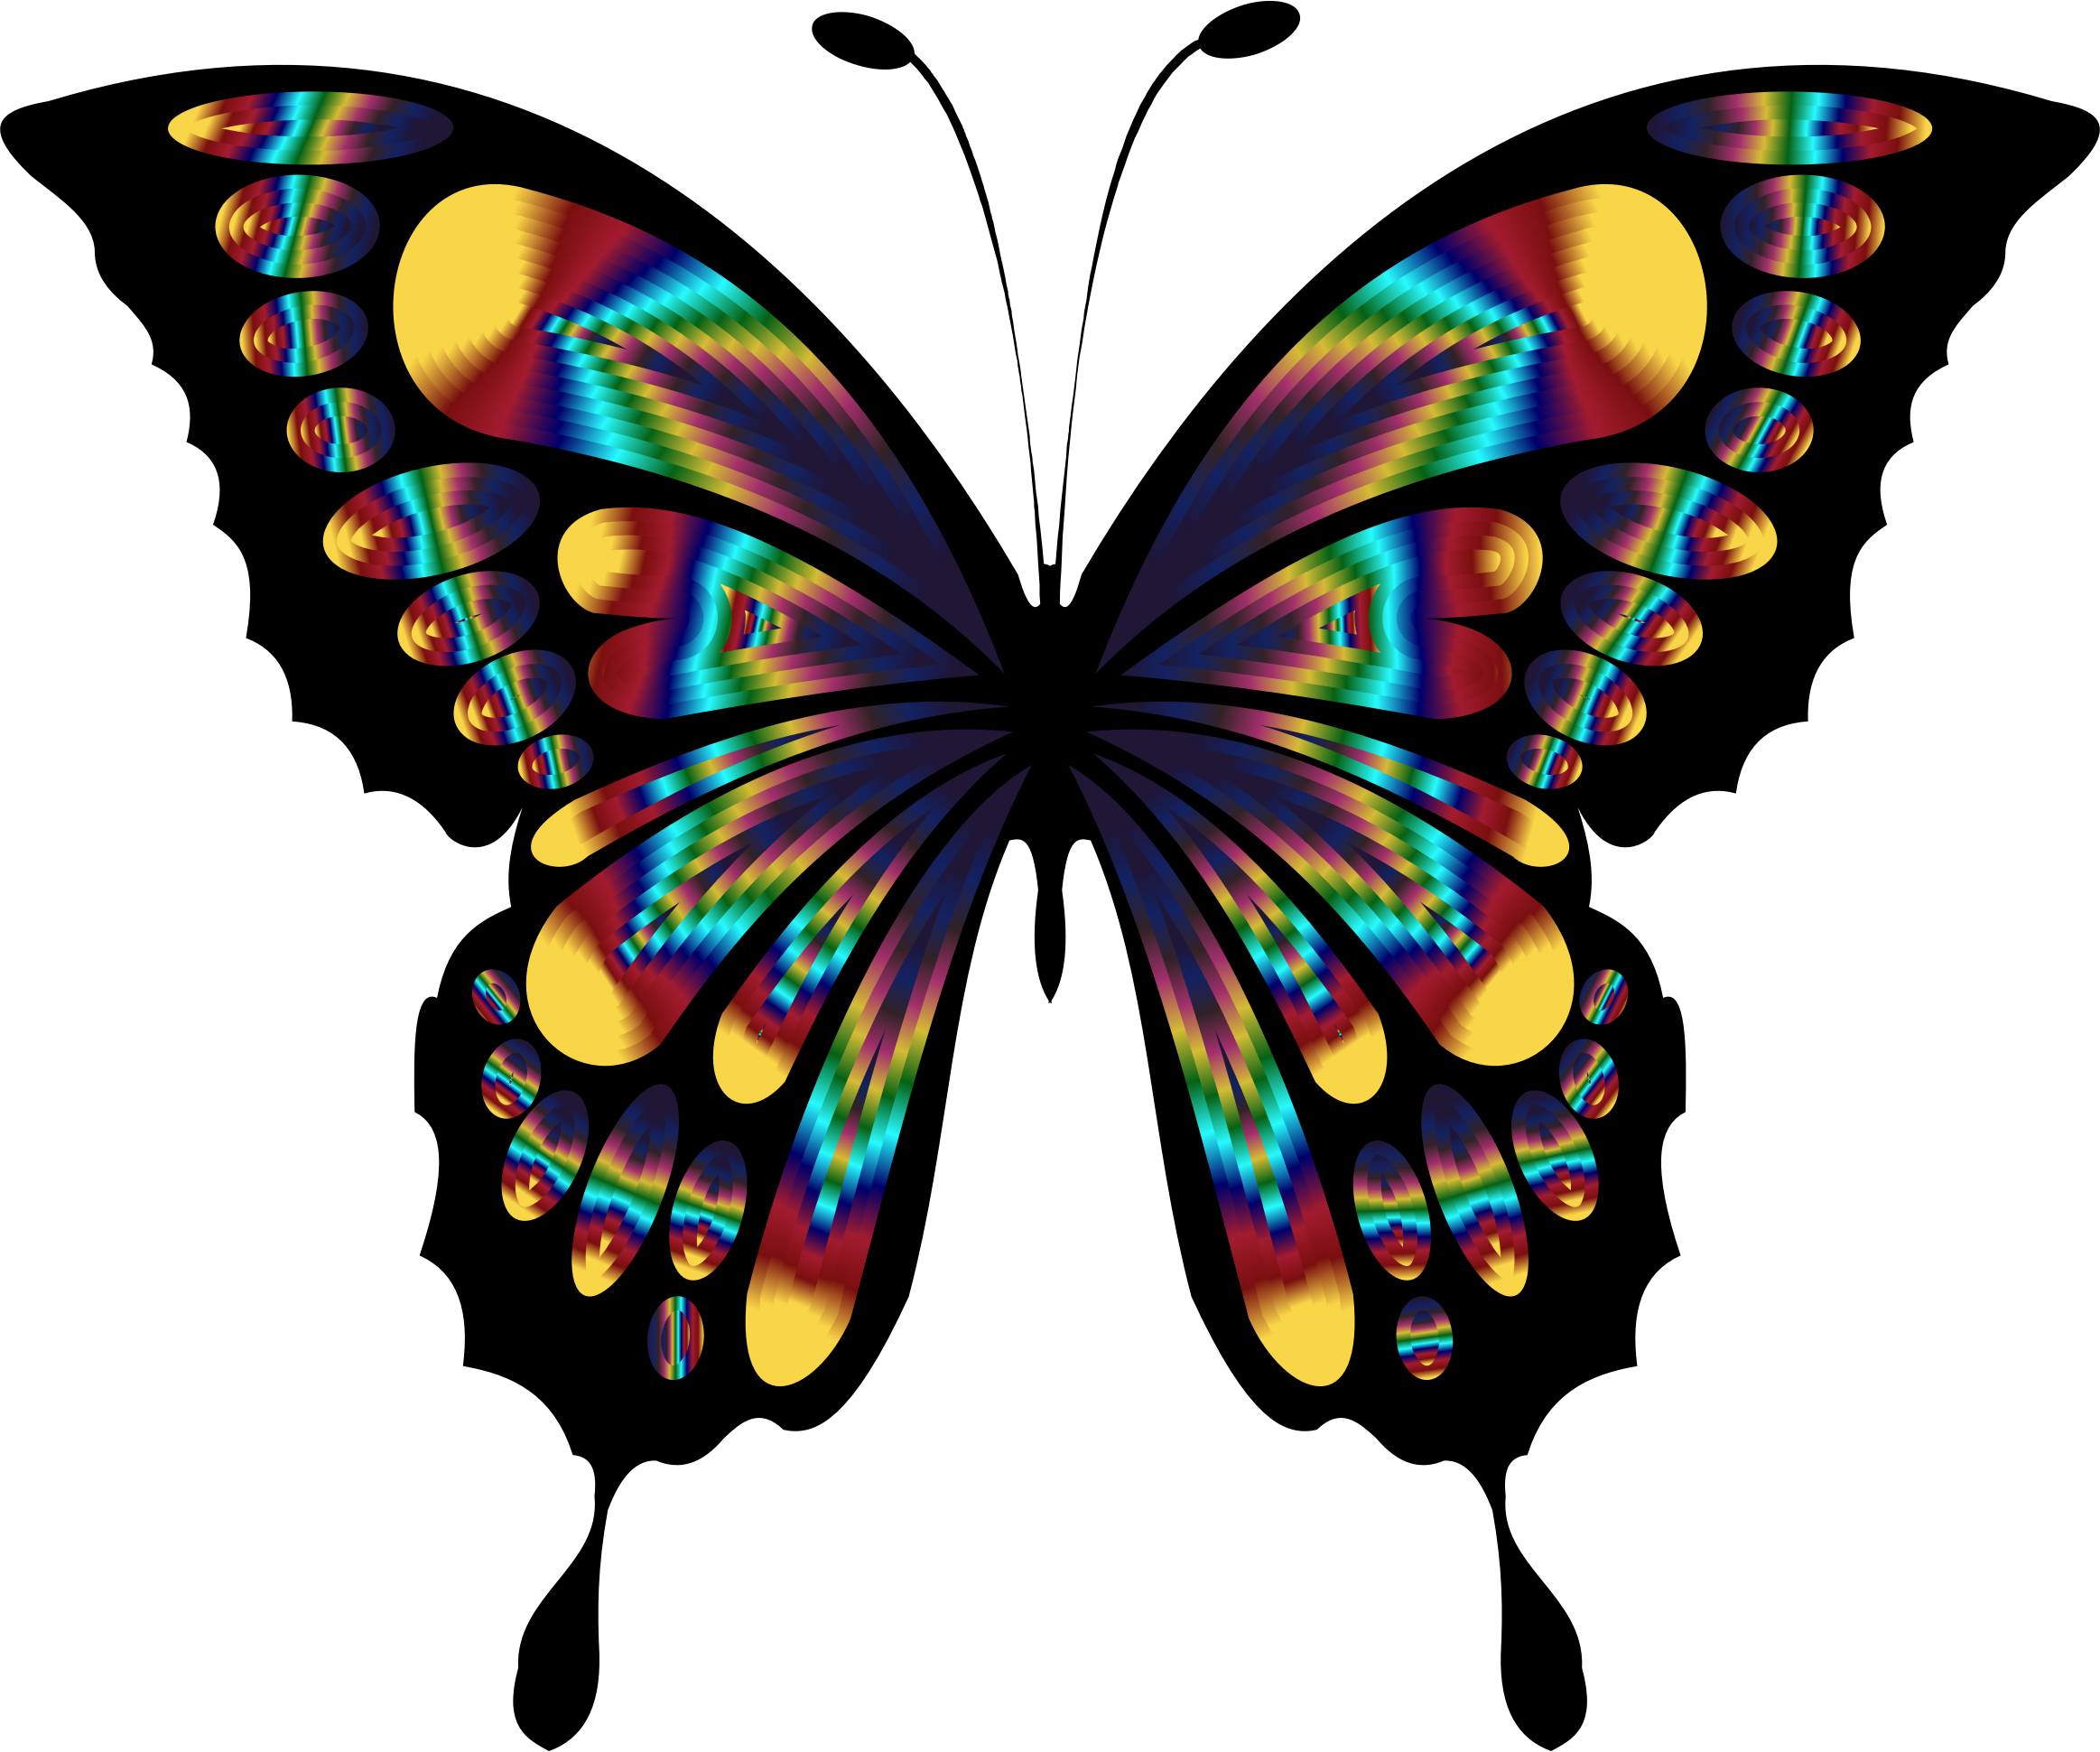 Prismatic Butterfly Remix 2 by GDJ